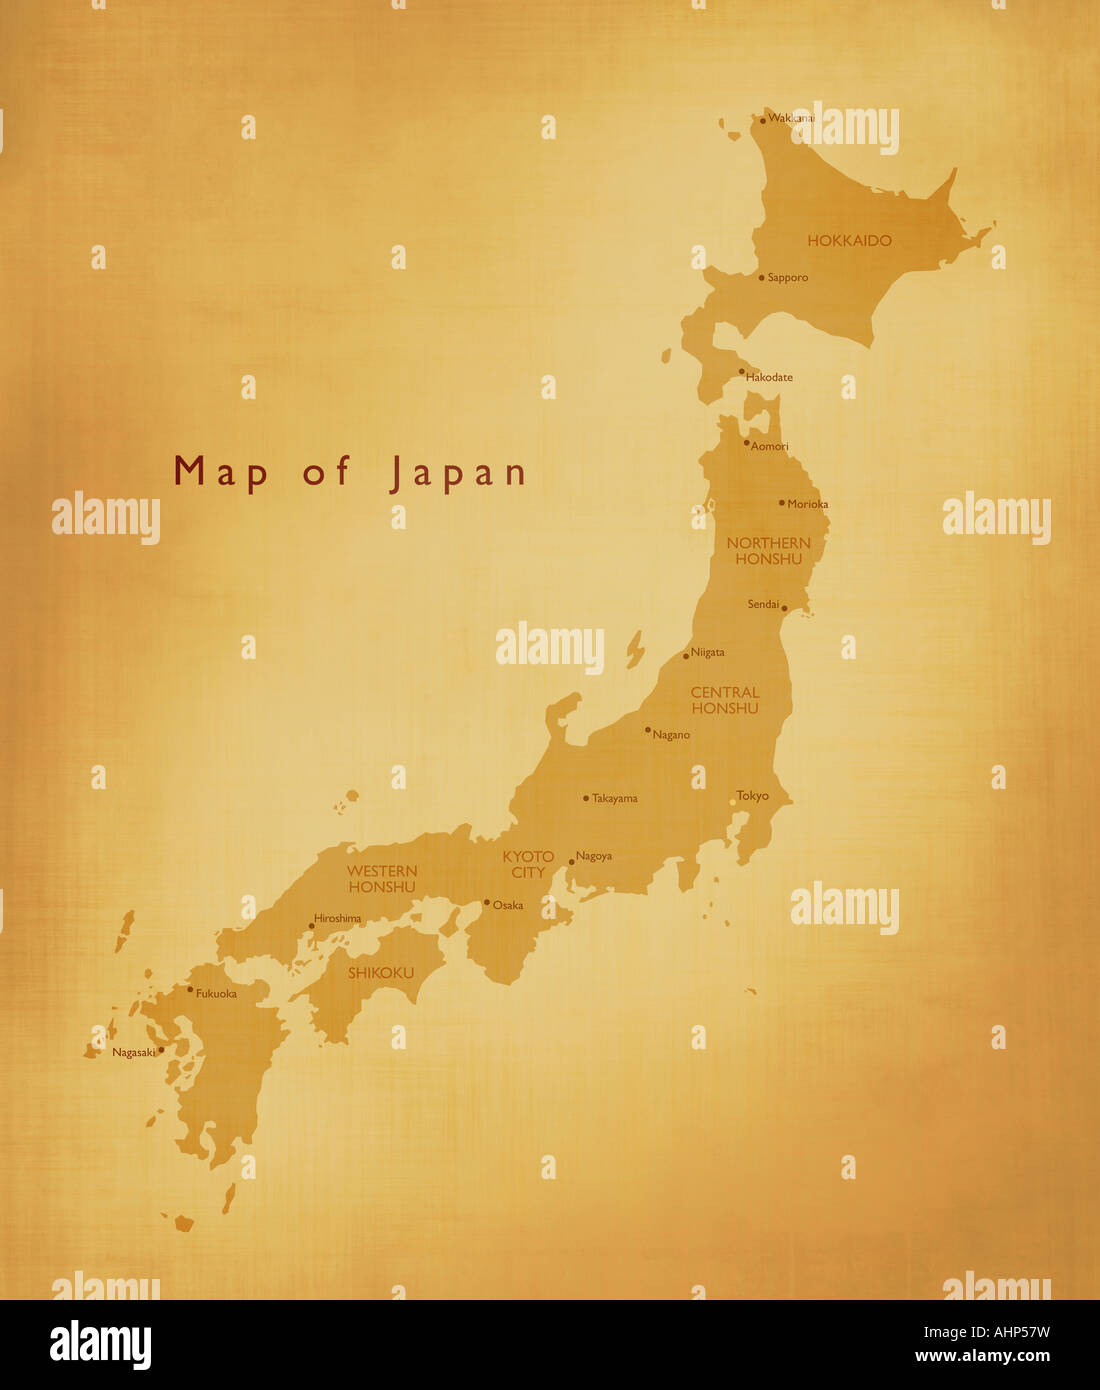 Map of Japan - Stock Image